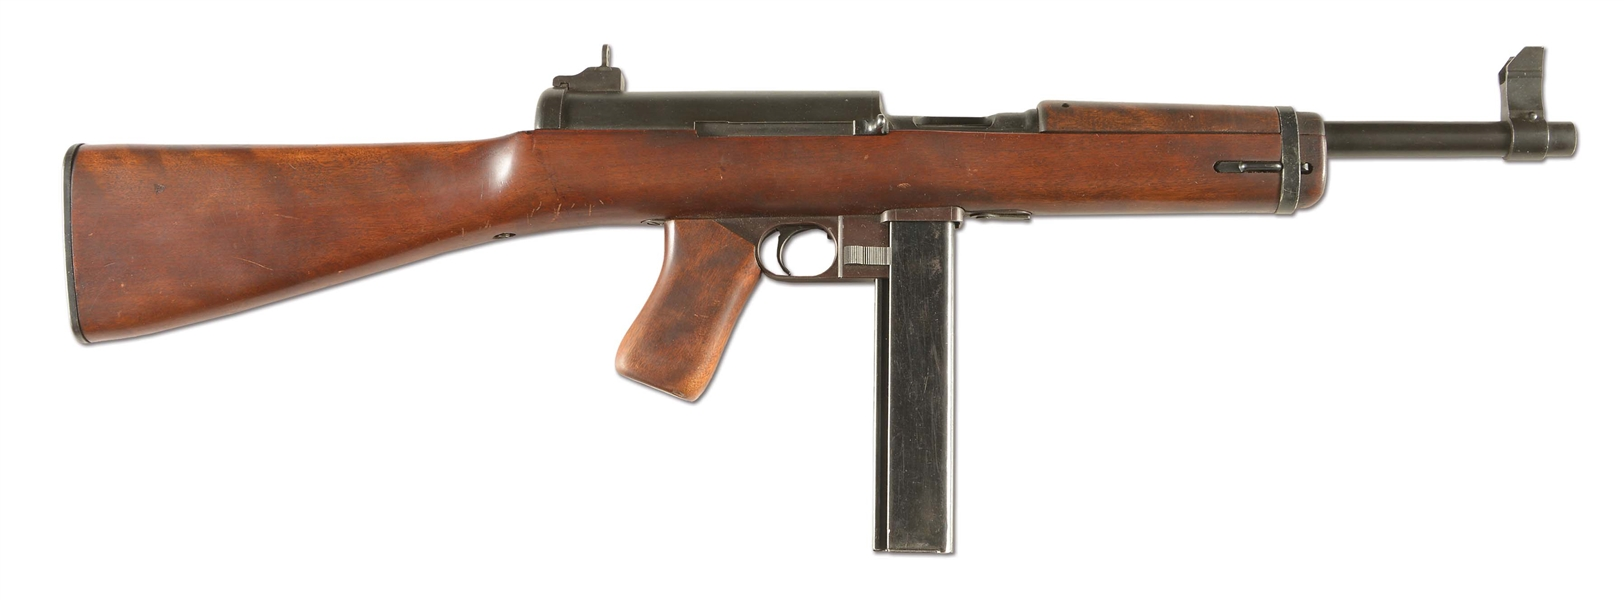 (N) EXCEPTIONALLY RARE U.S. MILITARY SUCCESSOR TO M1A1 THOMPSON MARLIN MANUFACTURED M2 MACHINE GUN (CURIO AND RELIC).